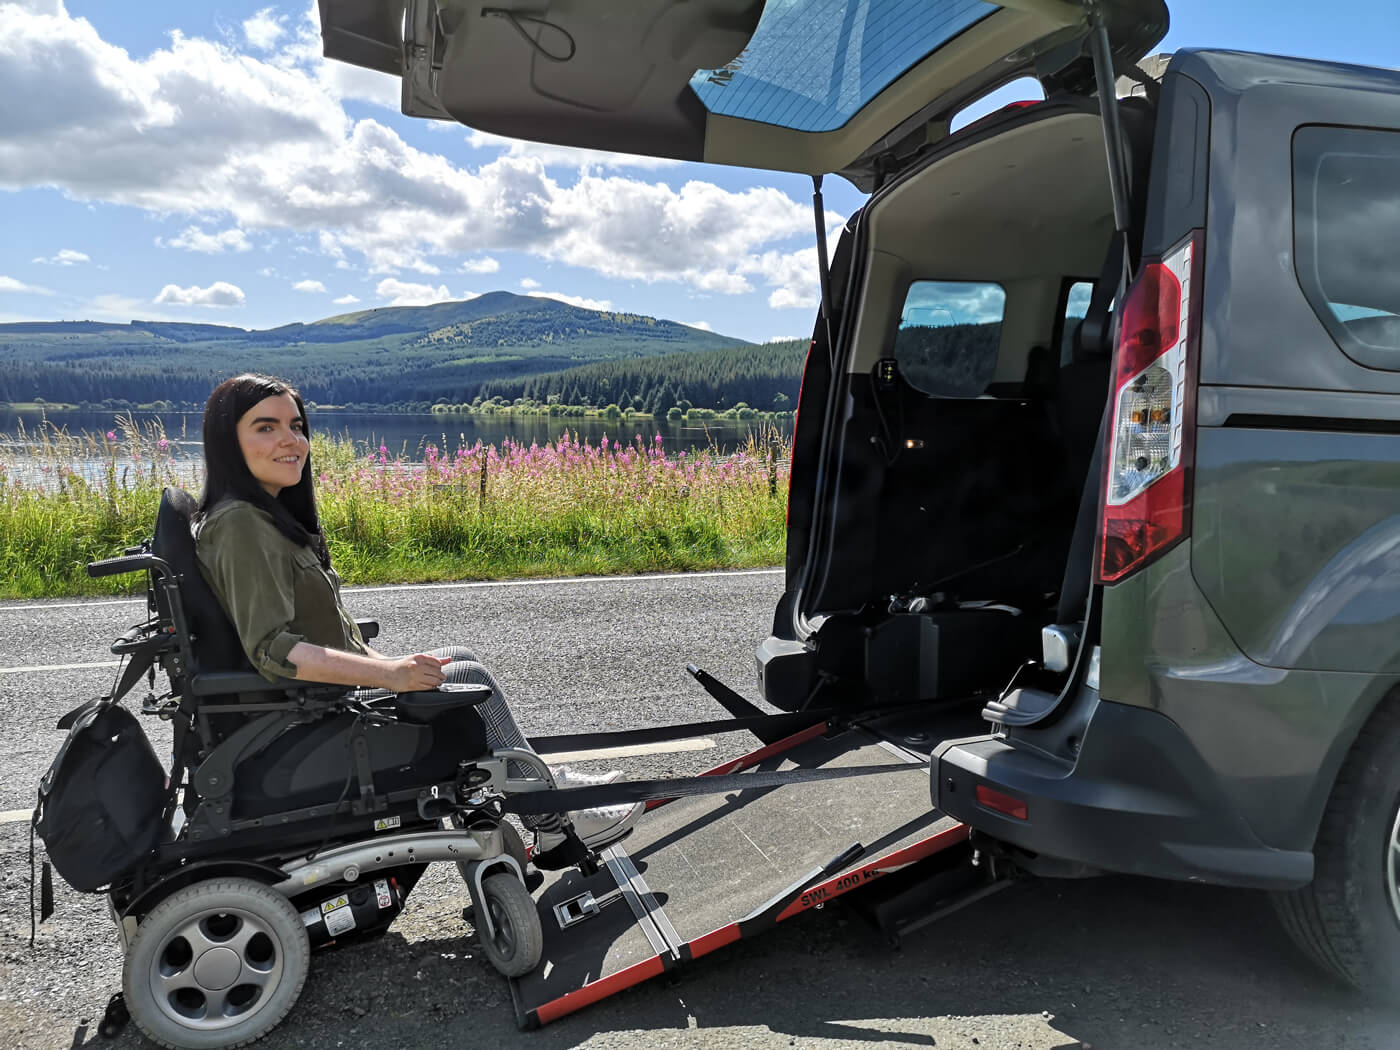 Emma sitting in her powered wheelchair at the bottom of the ramp of her wheelchair accessible vehicle. The Carron Valley Reservoir is behind her.